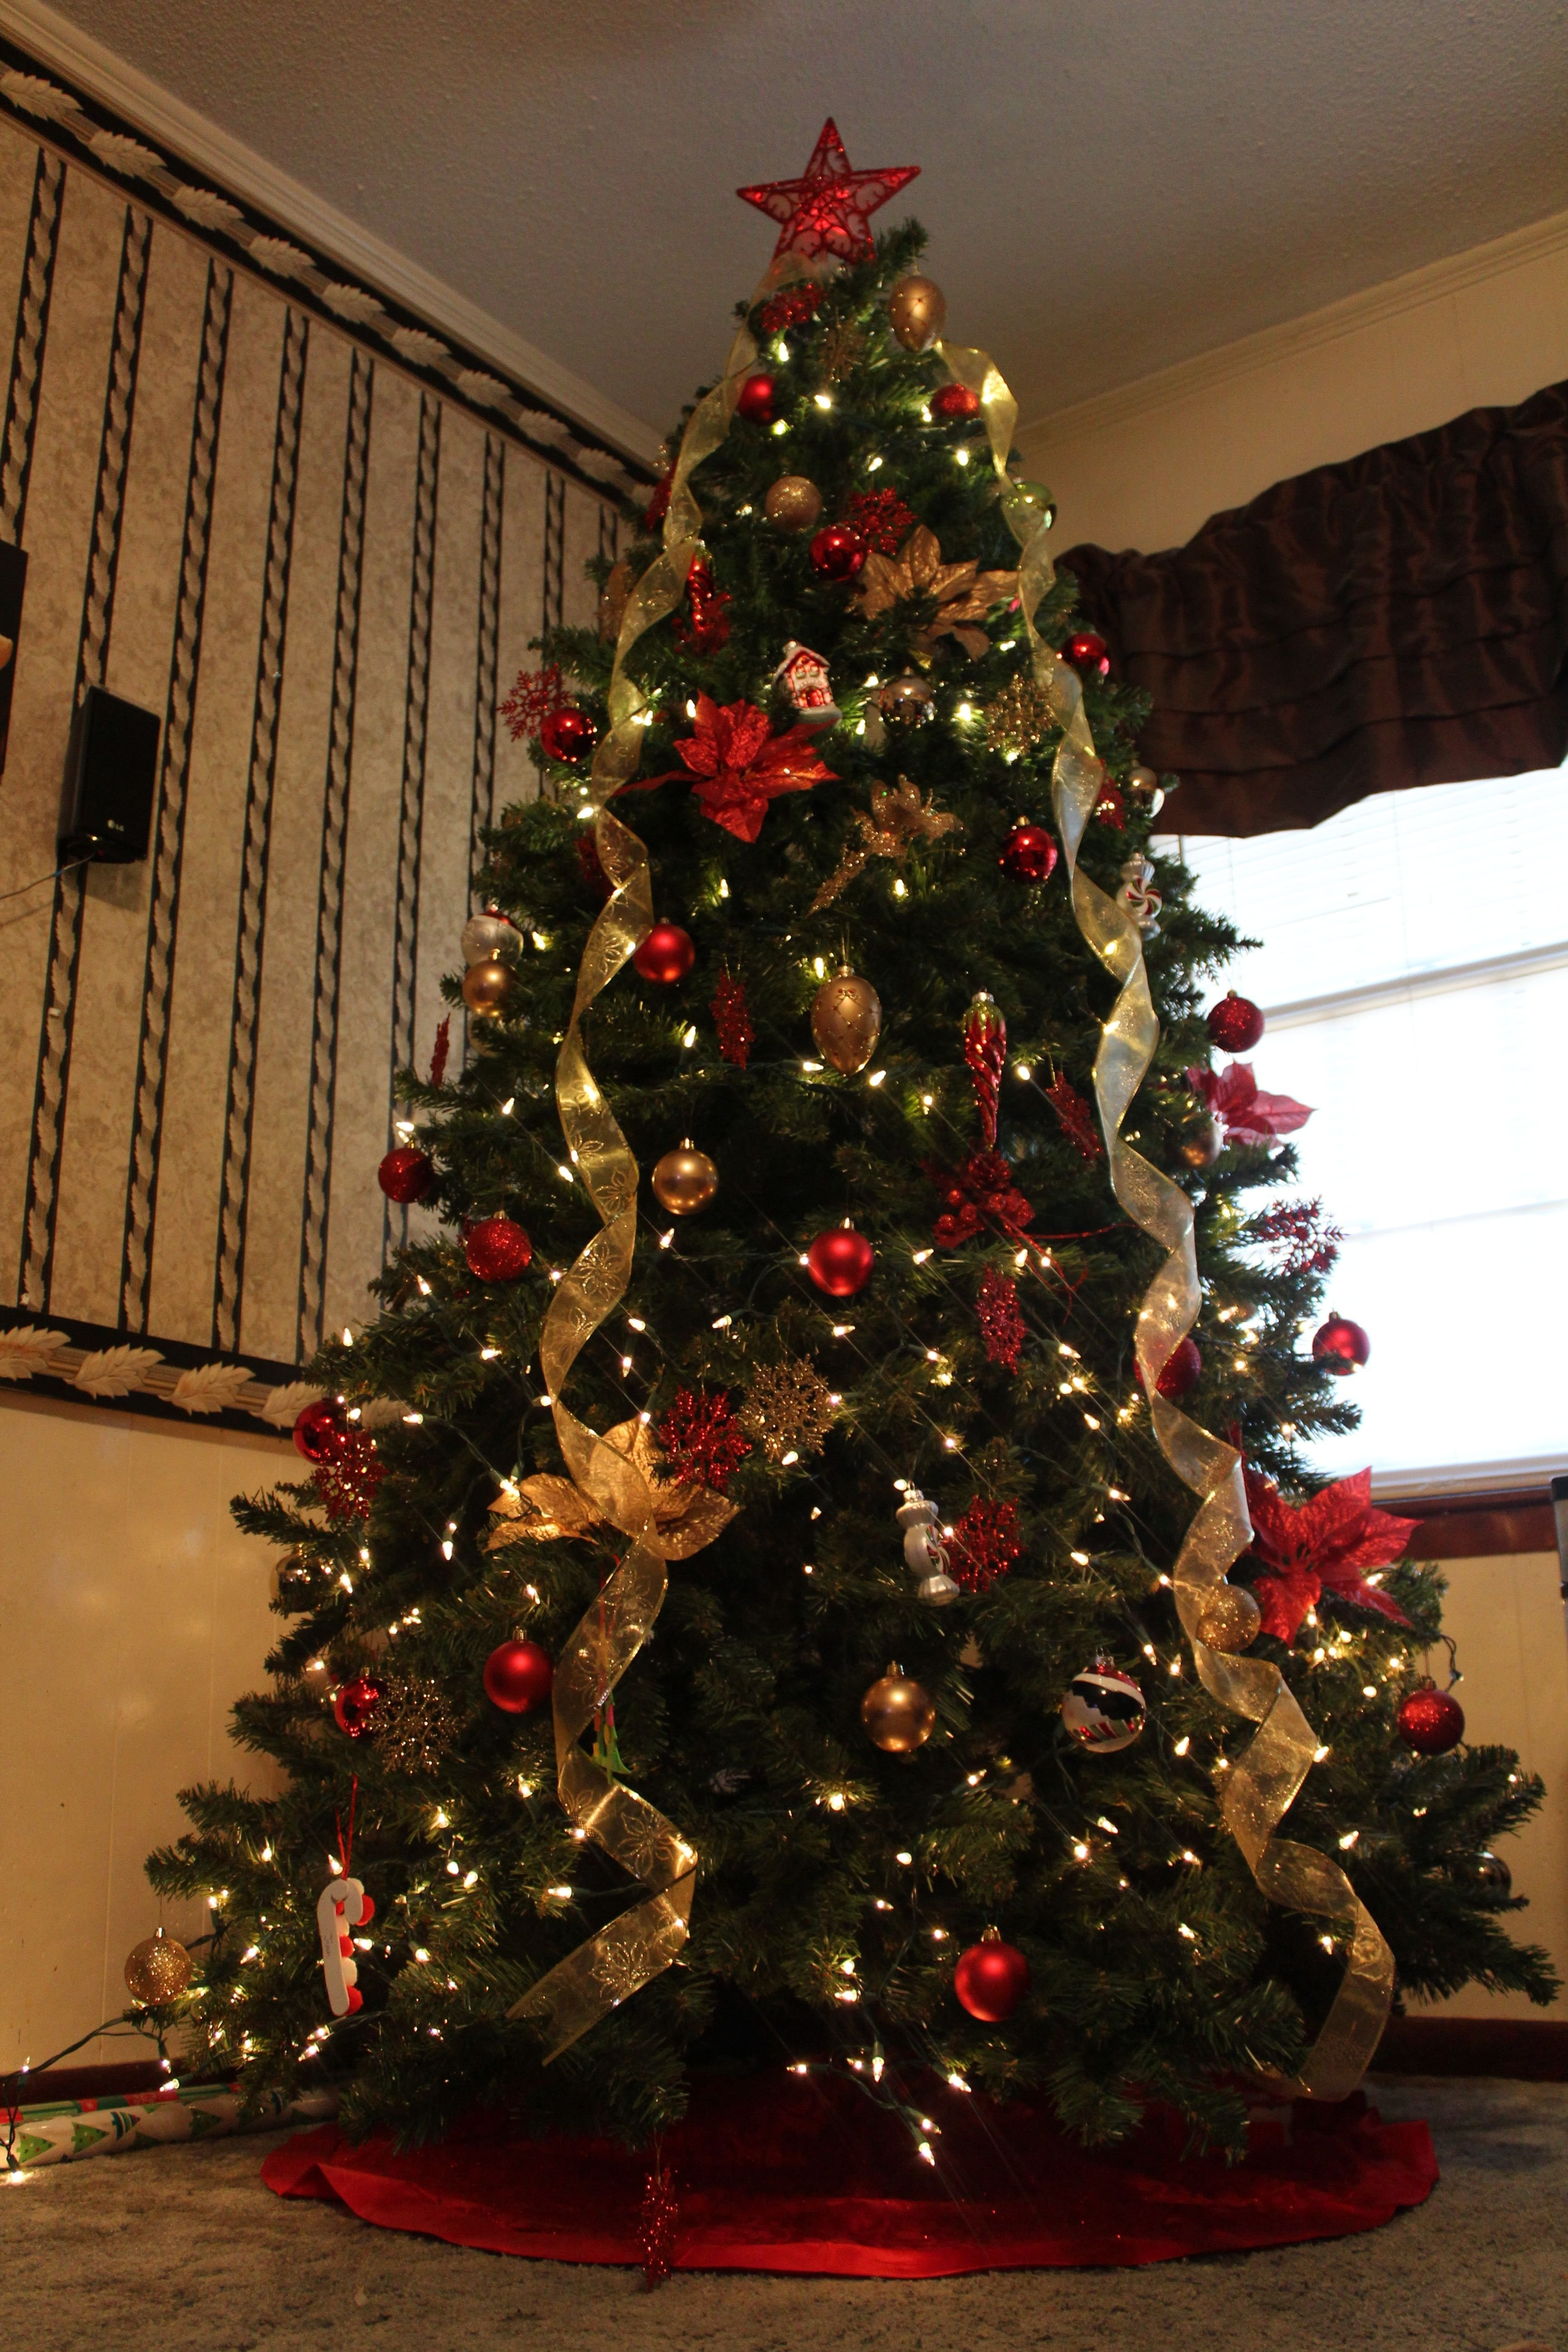 10 Attractive Decorating Christmas Tree With Ribbon Ideas most beautiful christmas tree decorations ideas gold christmas 2021